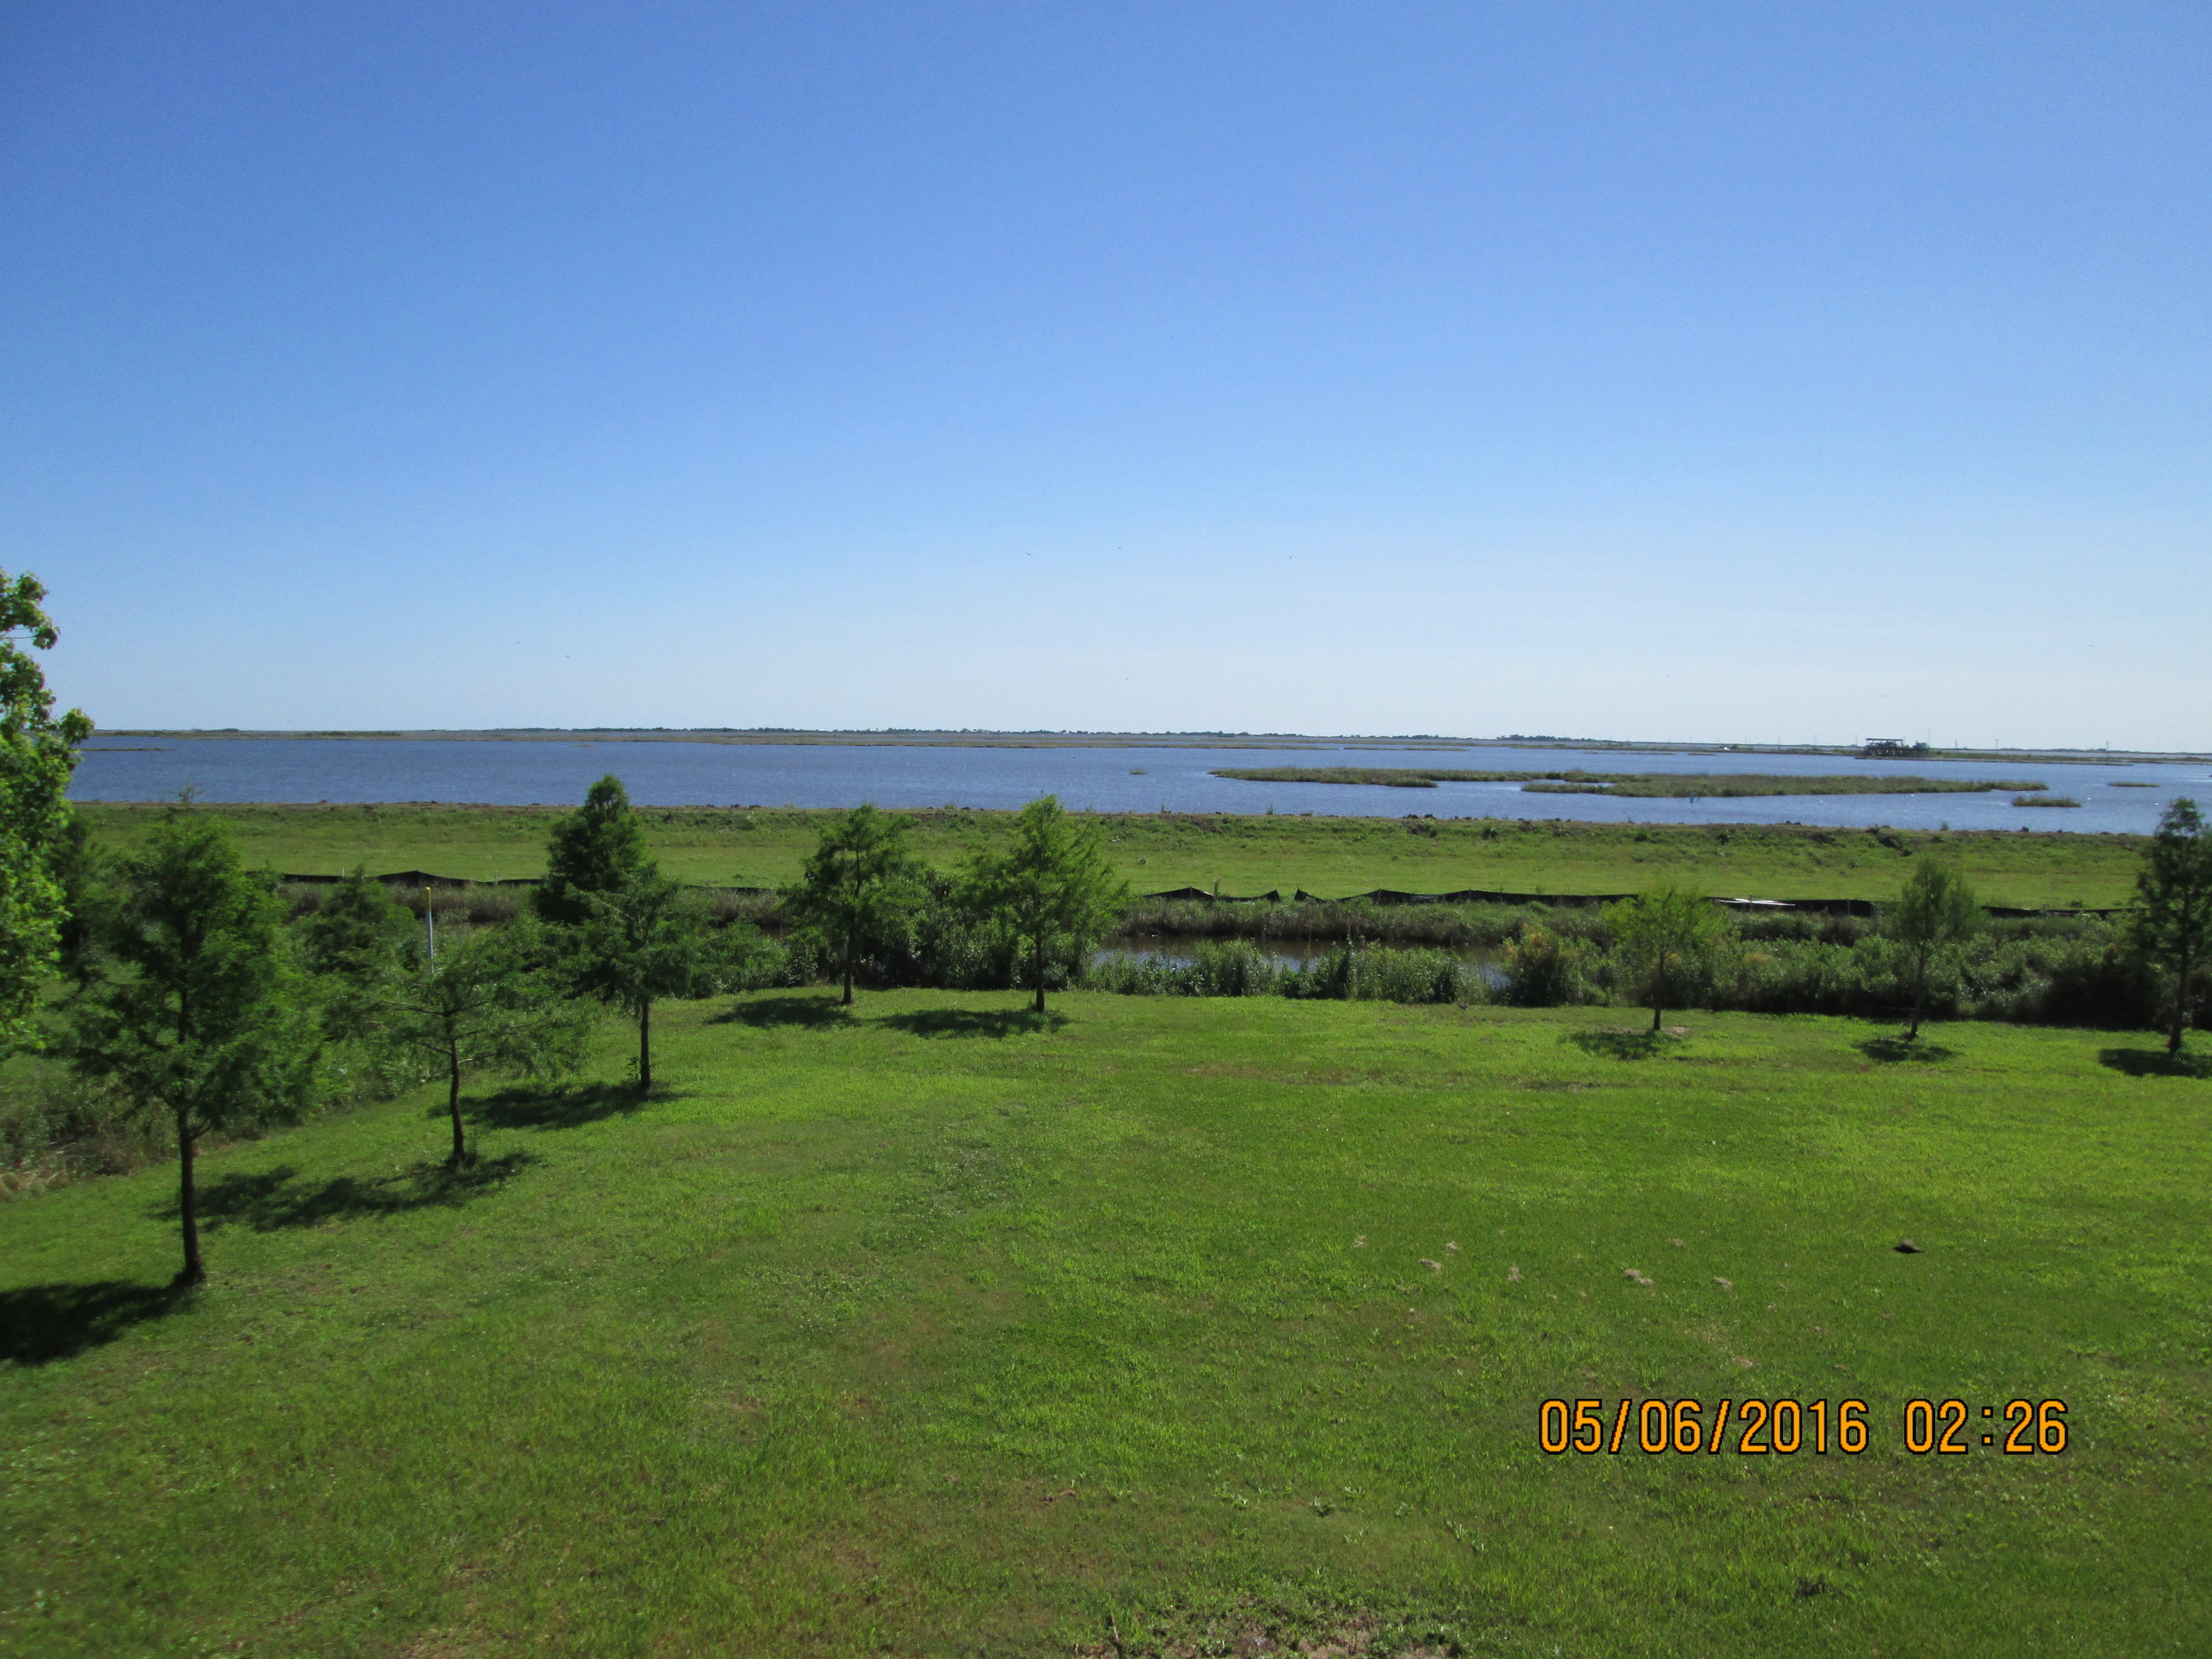 Gulf of Mexico intrudes behind Pointe au Chien Indian Tribal headquarters building.